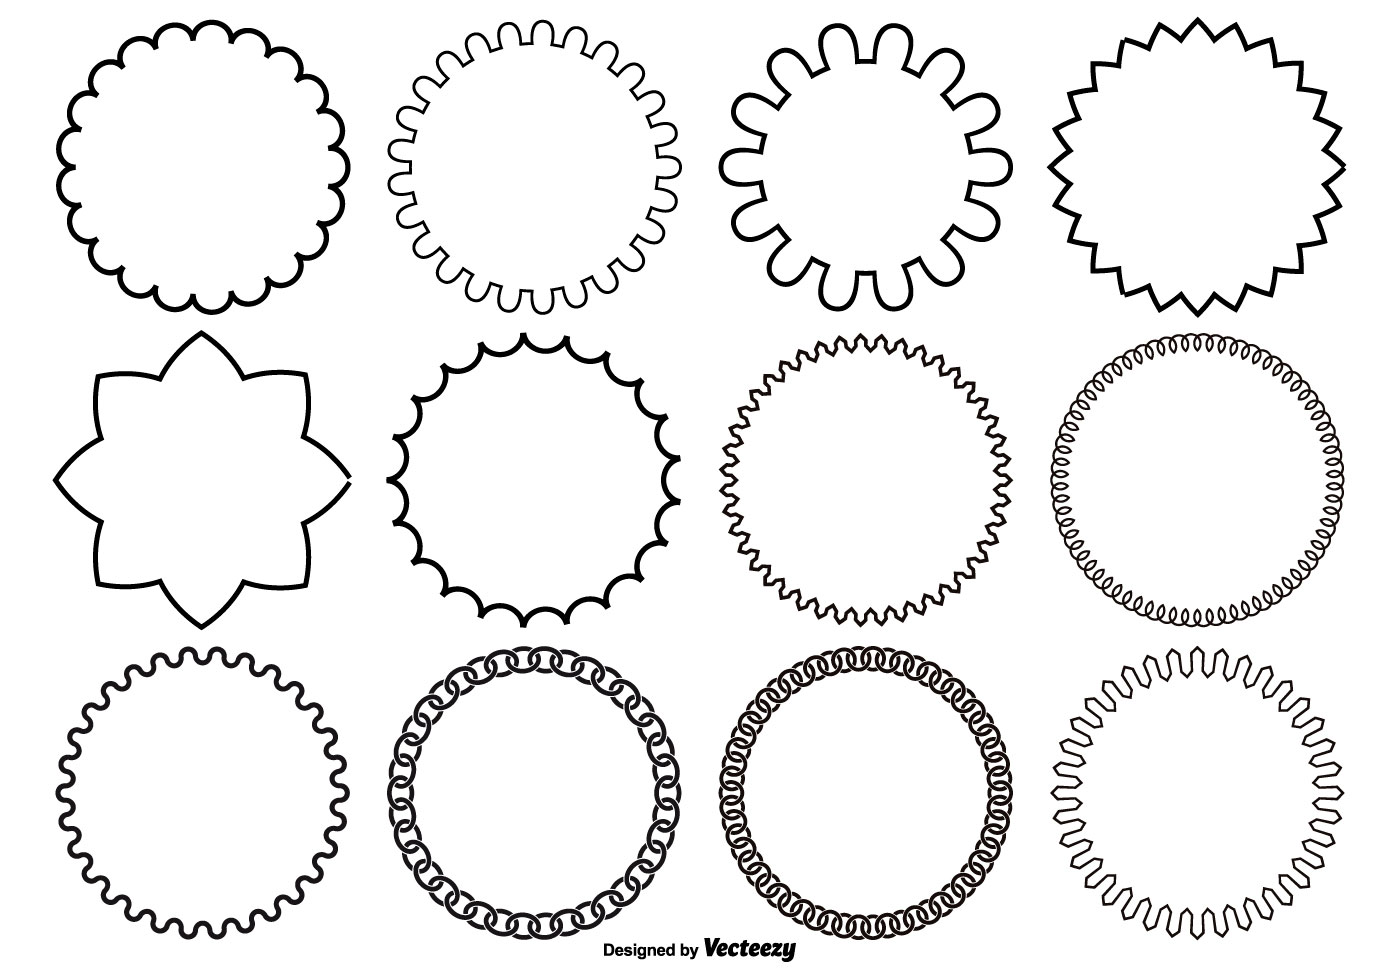 Assorted Circle Vector Shapes - Download Free Vector Art ...